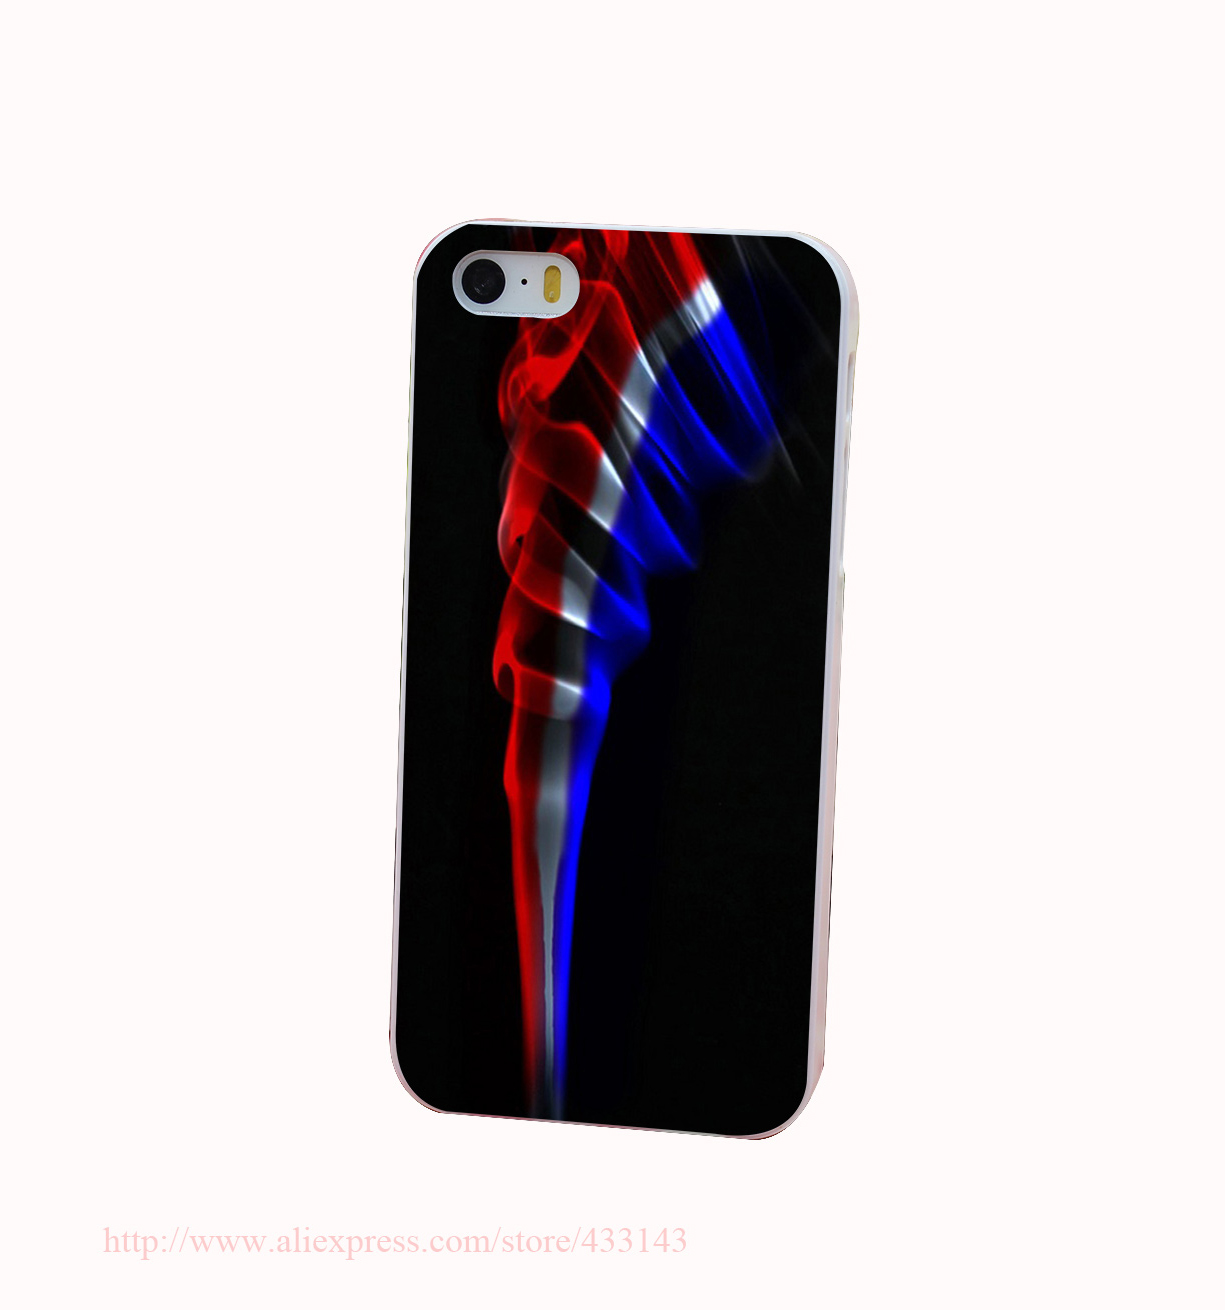 Vapors Hard White Cover Case for iPhone 4 4s 5 5s 5c 6 6s Protect Phone Cases(China (Mainland))